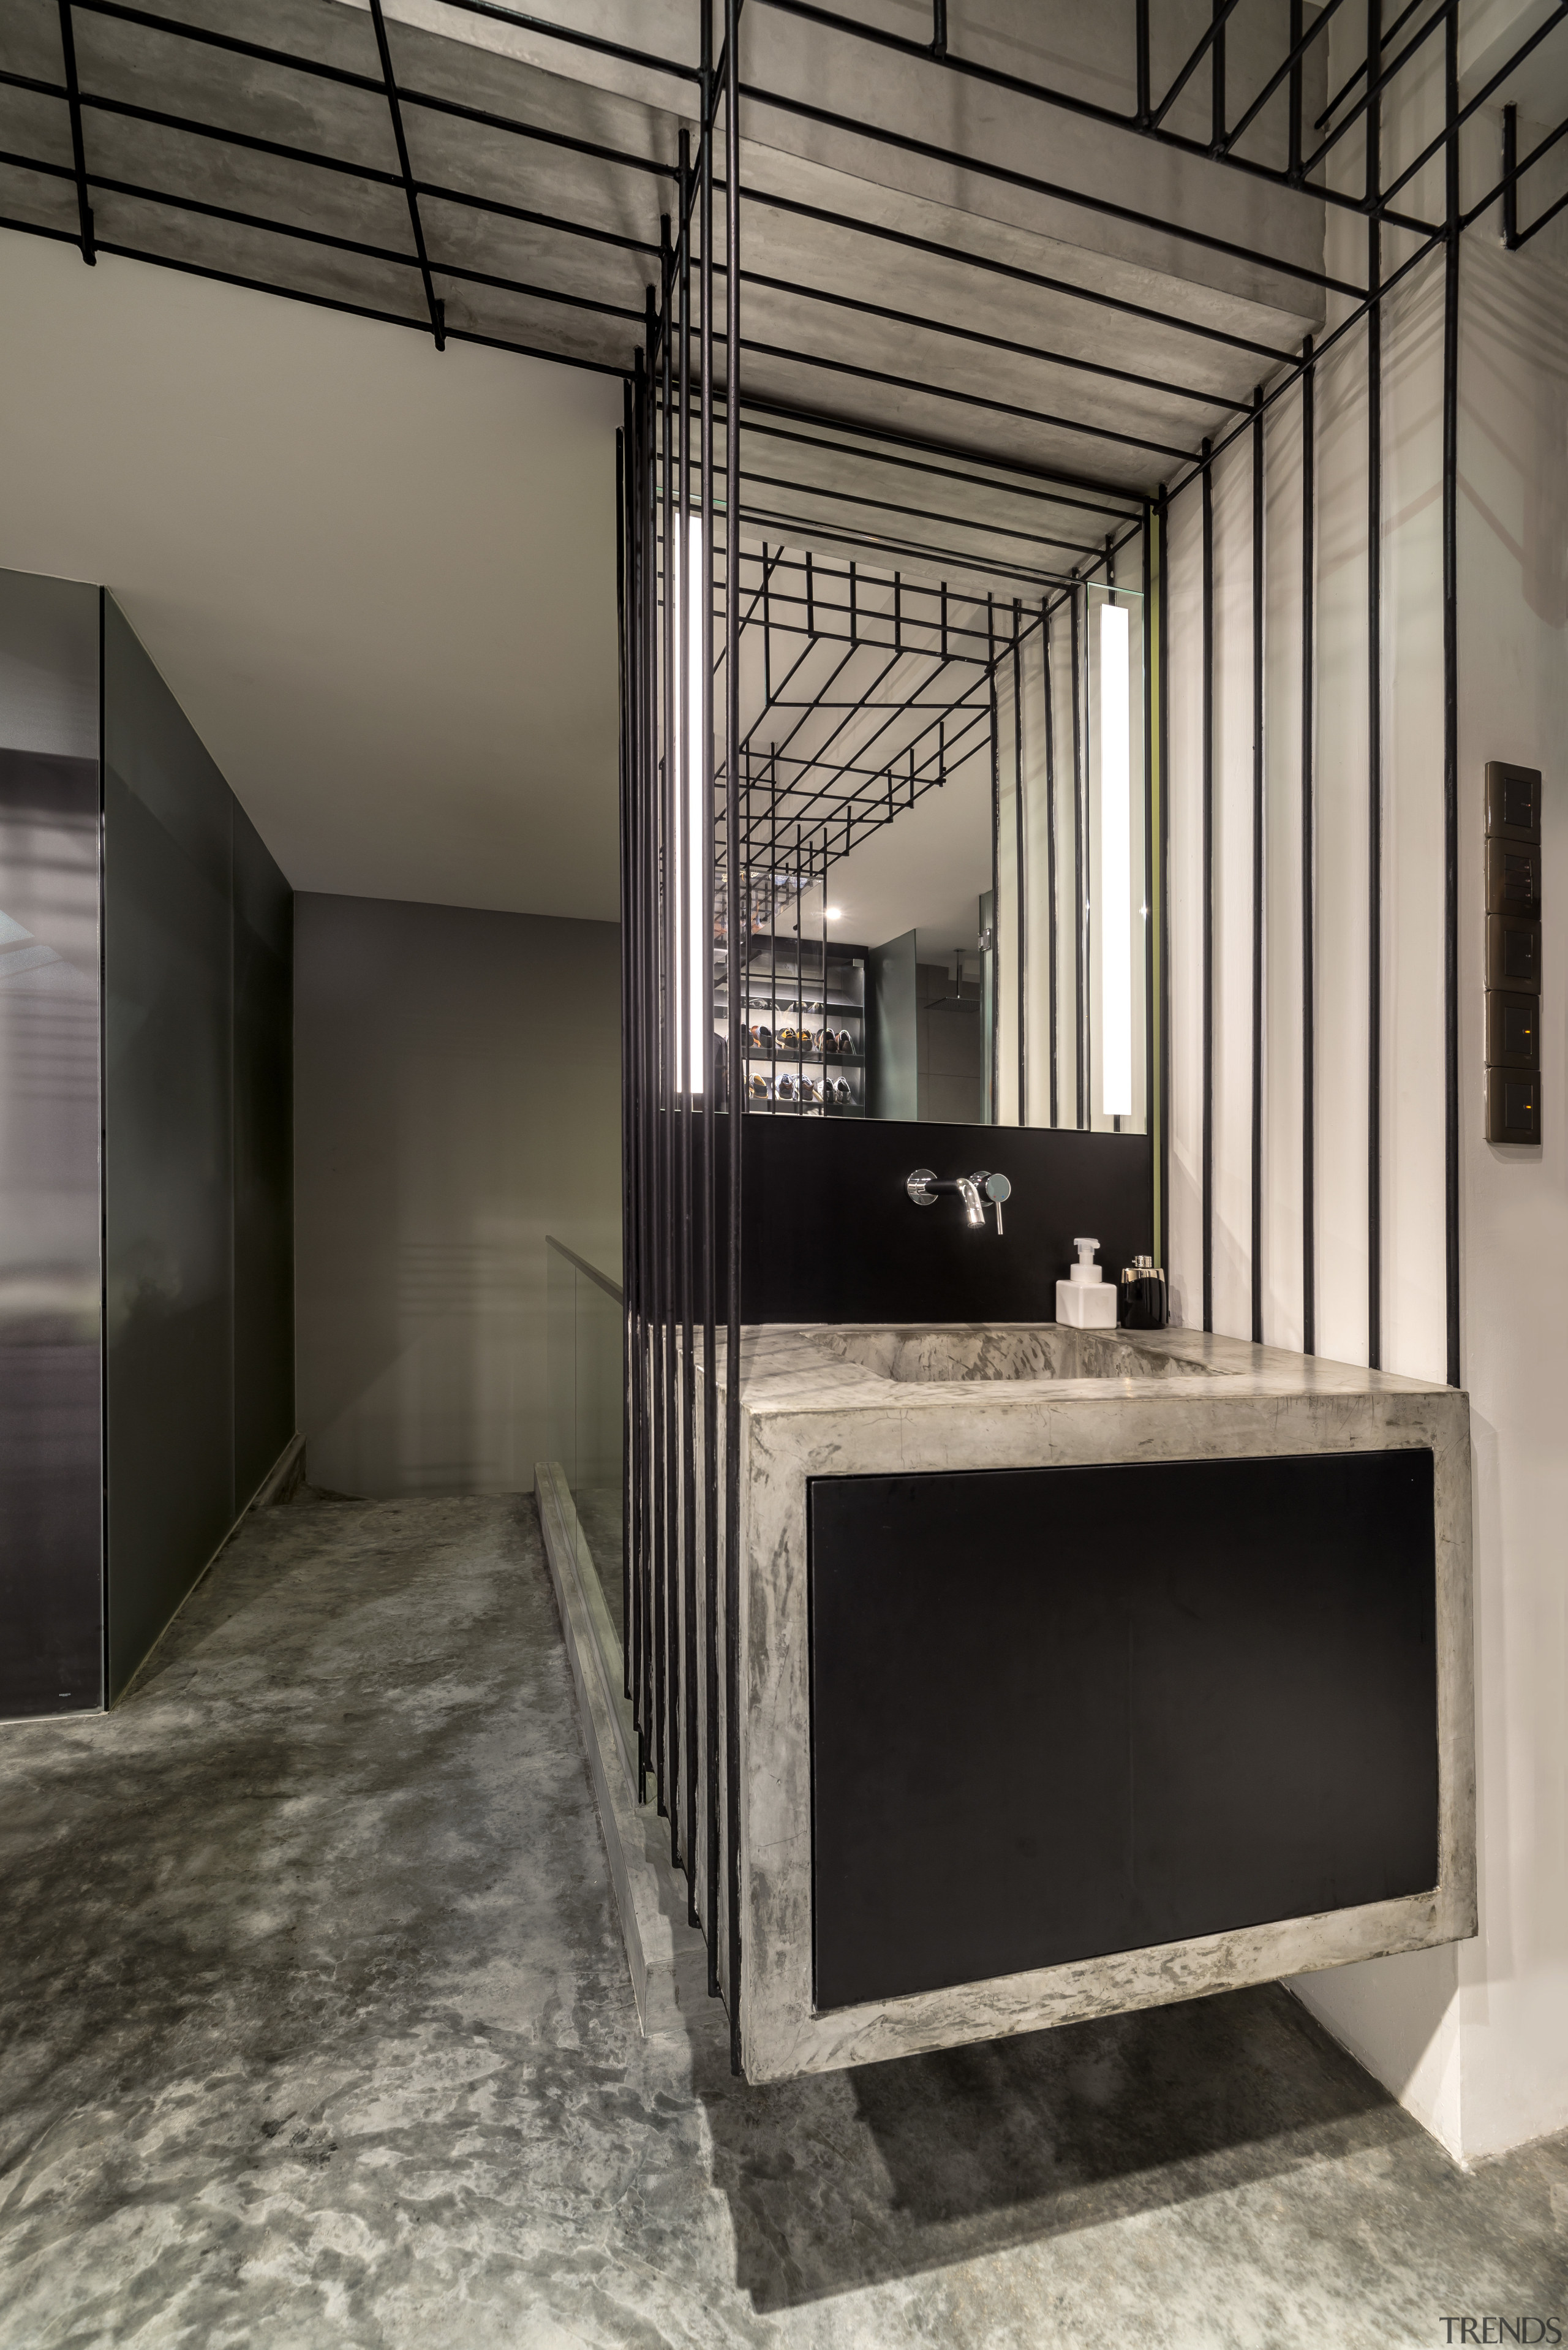 Steel framework appears to support this floating vanity architecture, ceiling, floor, flooring, interior design, gray, black